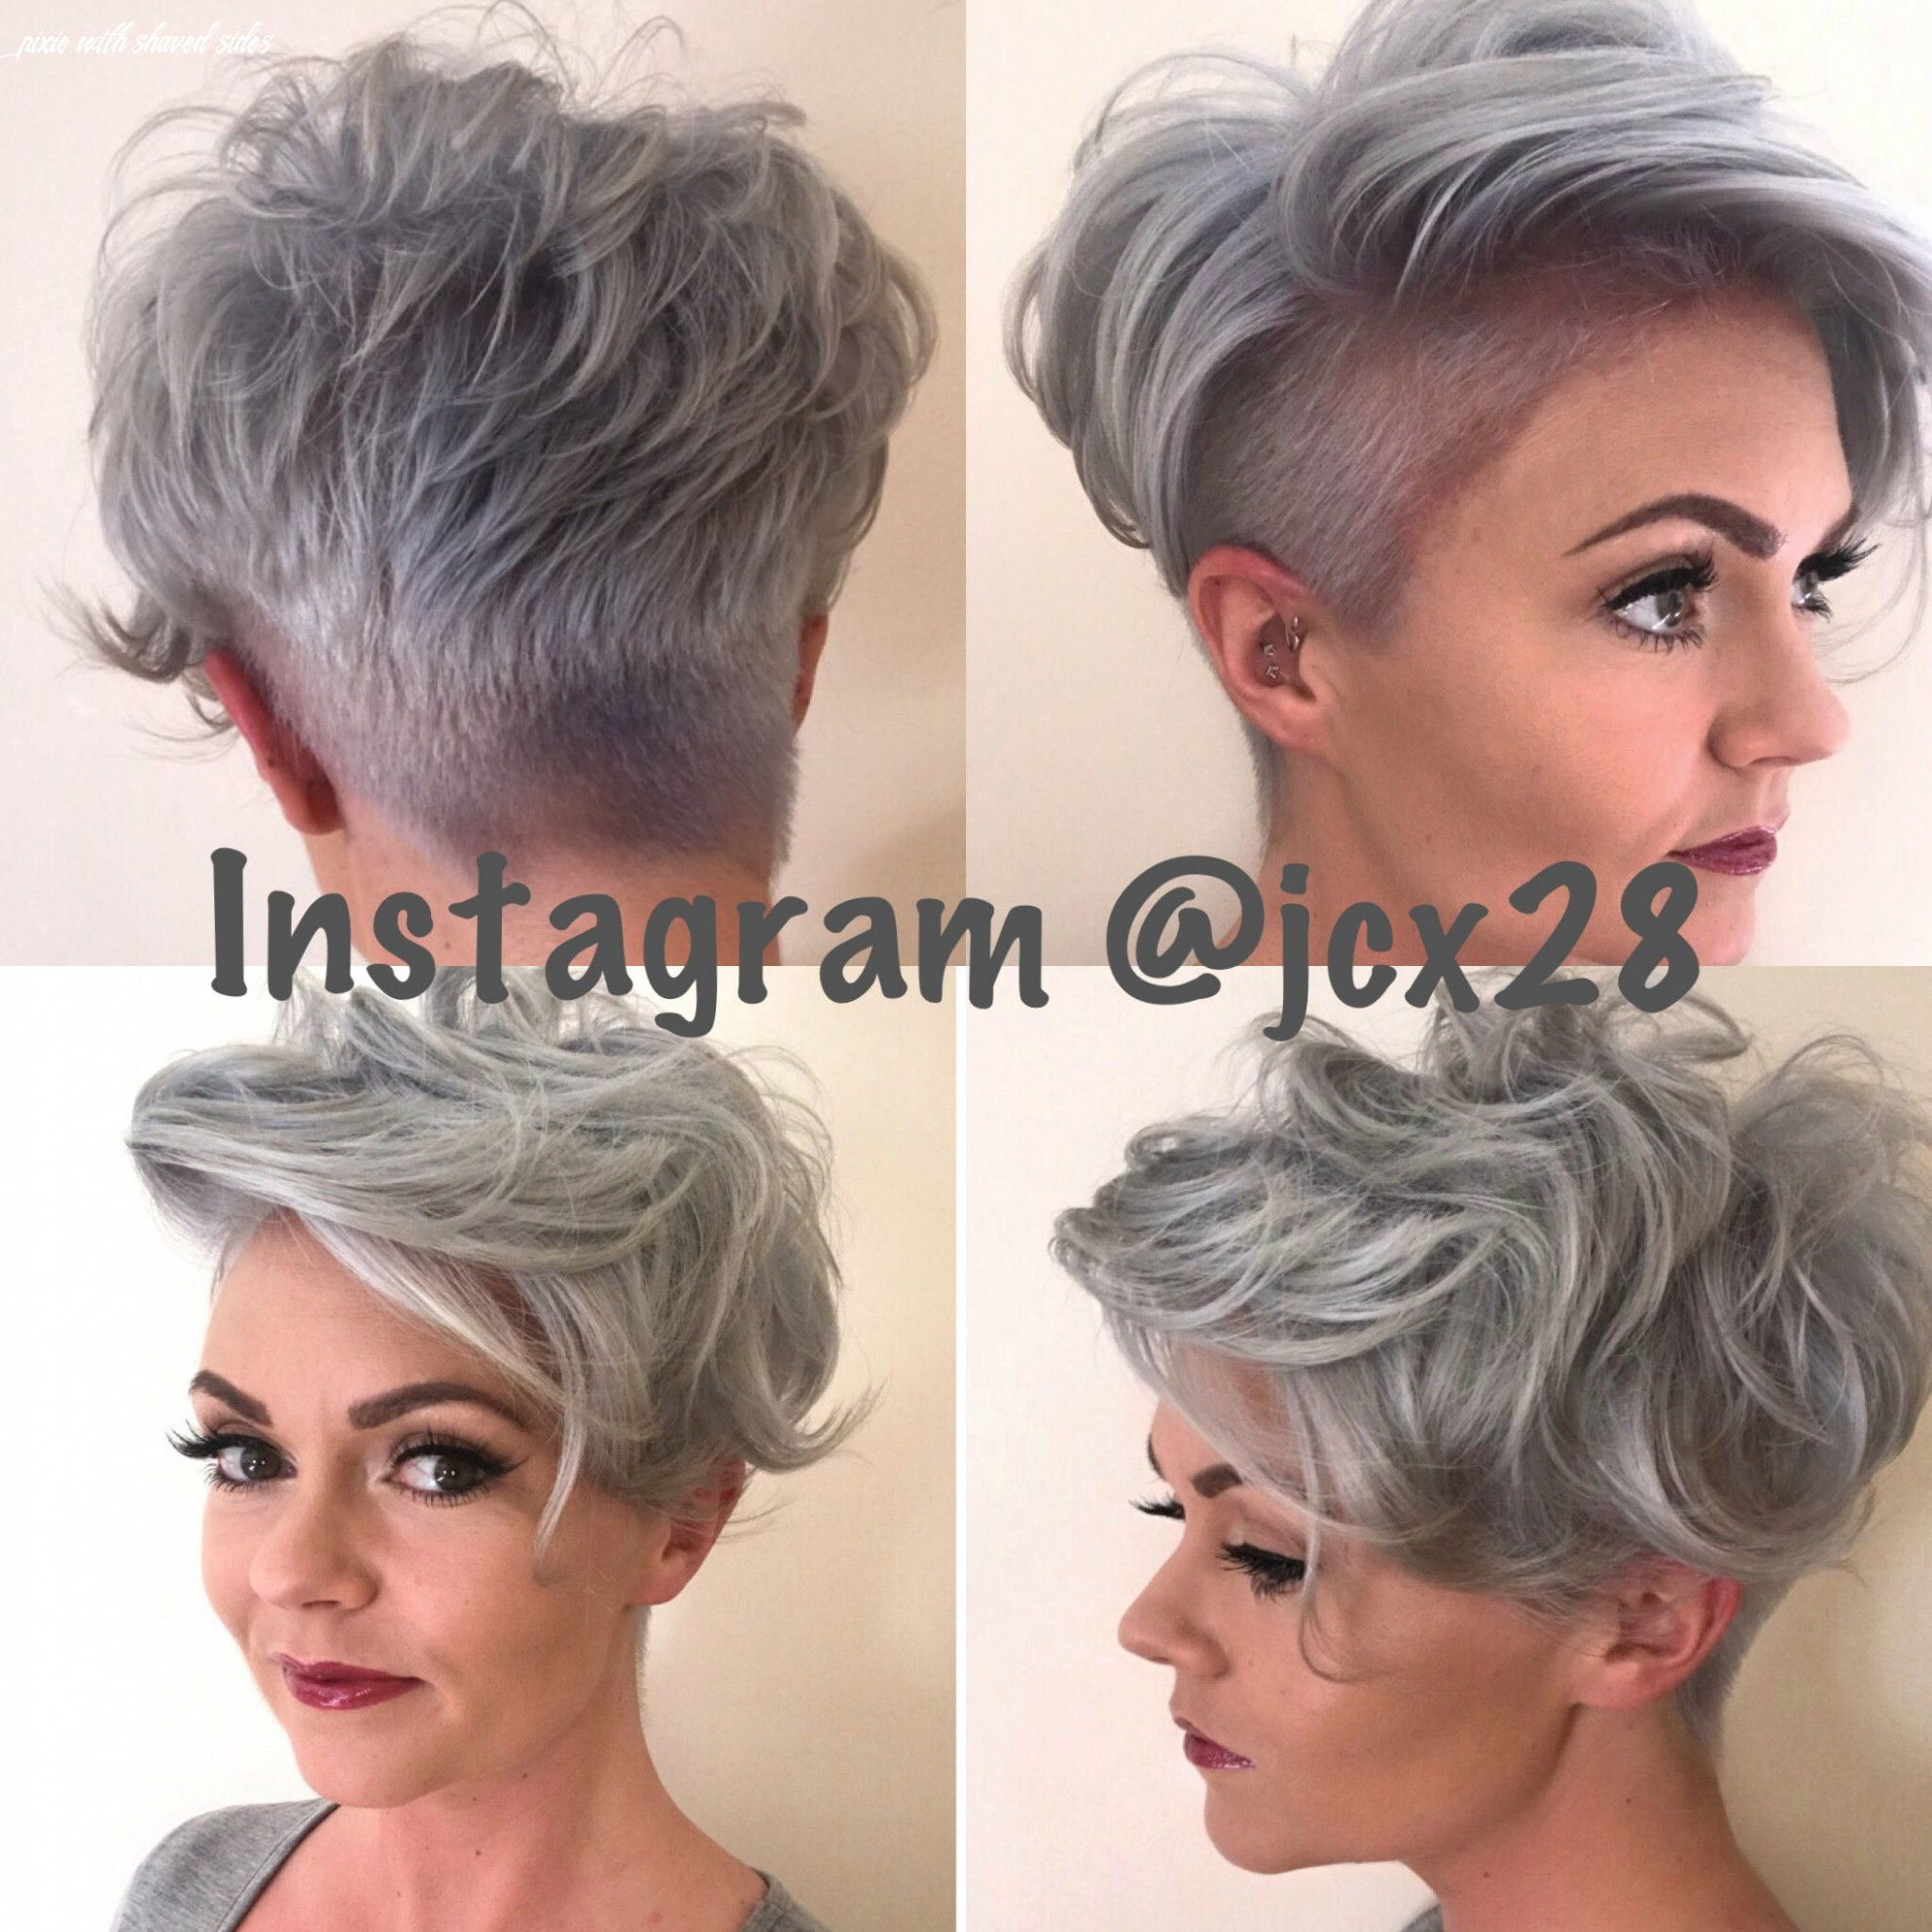 Pin on hair pixie with shaved sides